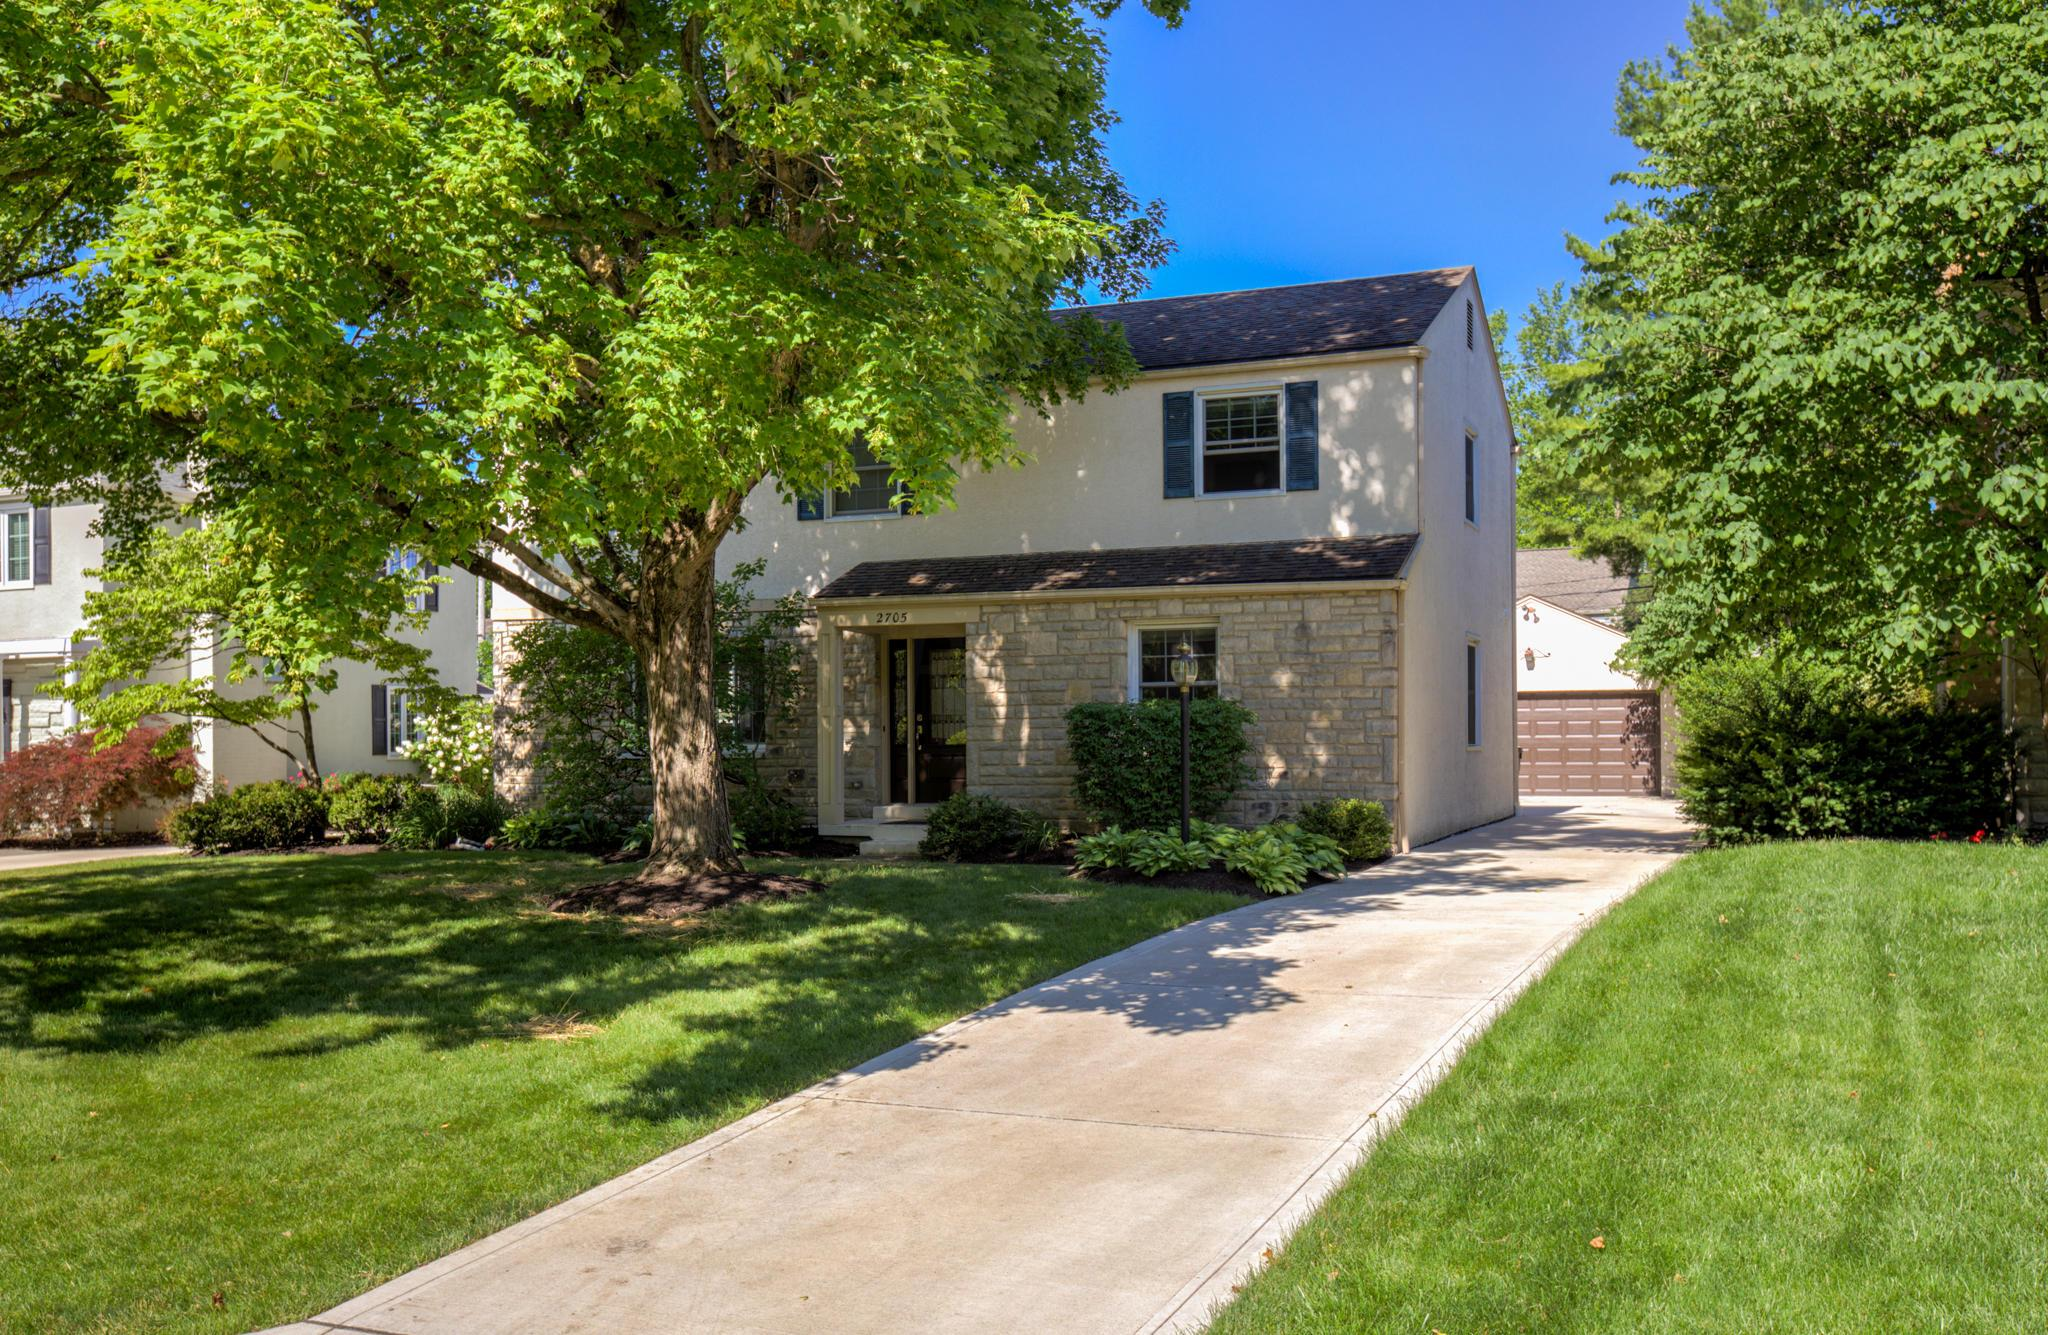 2705 Wexford Road, Columbus, Ohio 43221, 5 Bedrooms Bedrooms, ,4 BathroomsBathrooms,Residential,For Sale,Wexford,220020519